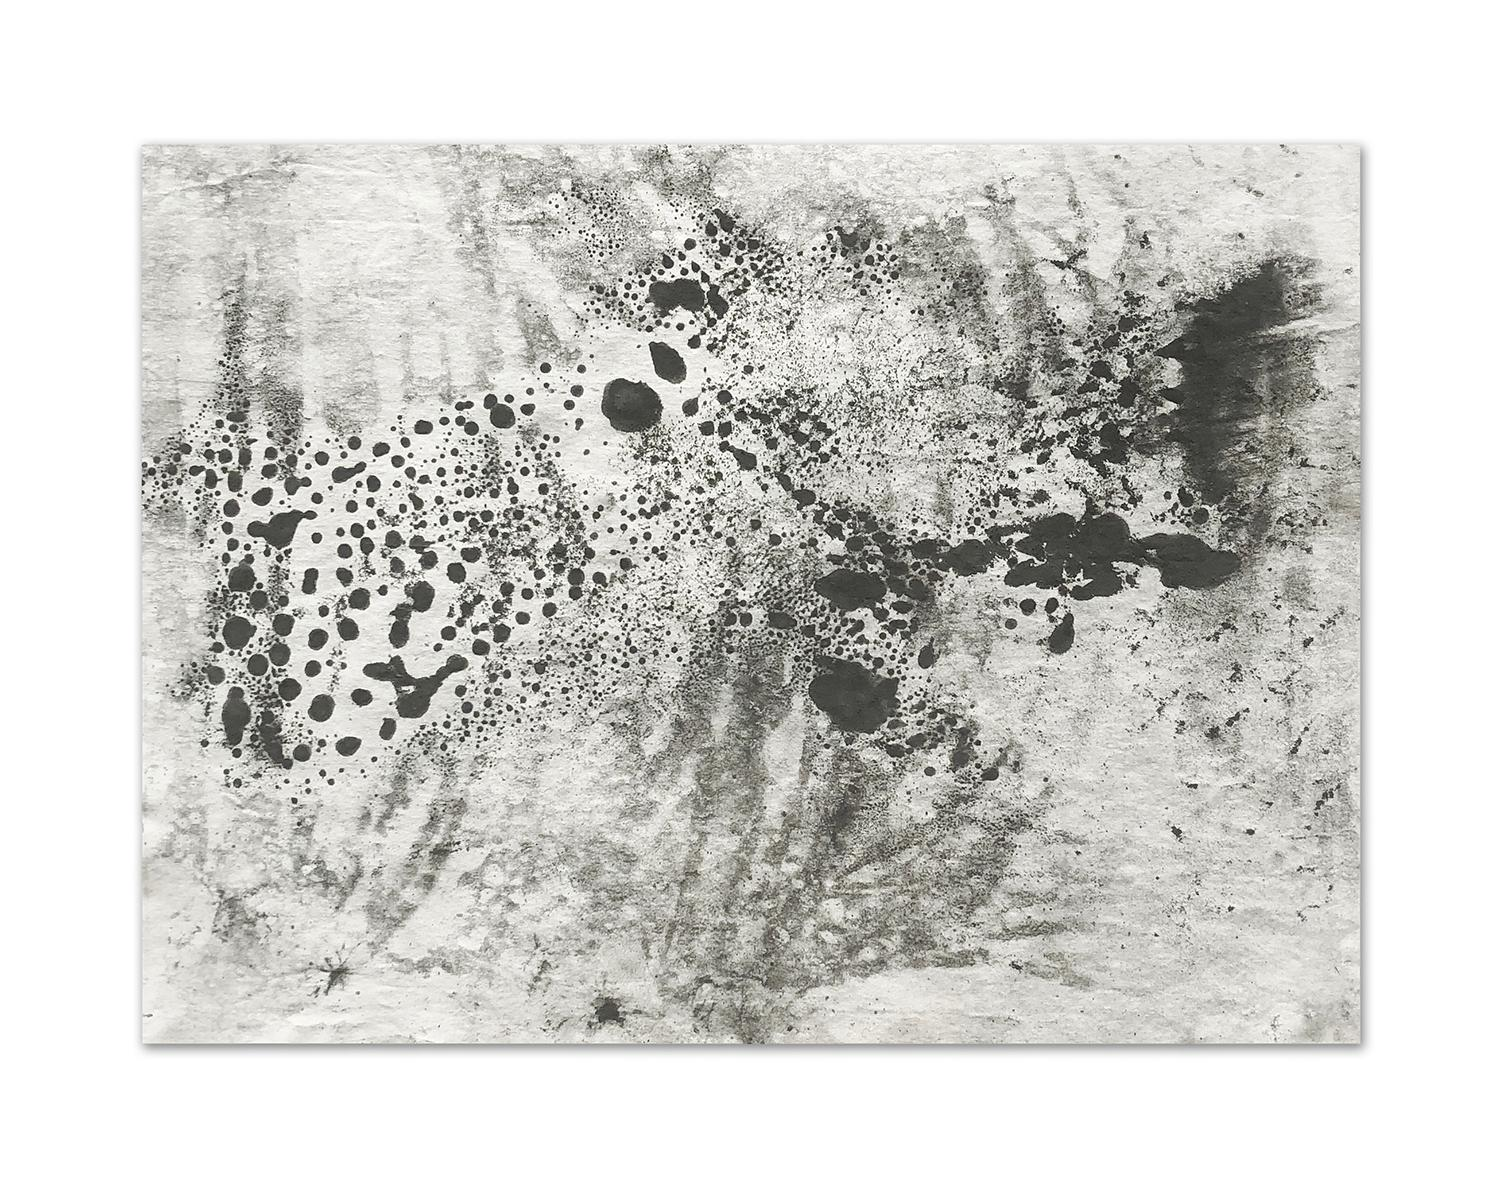 Ash Ceniza #4, (drawing, black and white, abstract, expressionist, ashes, paper)